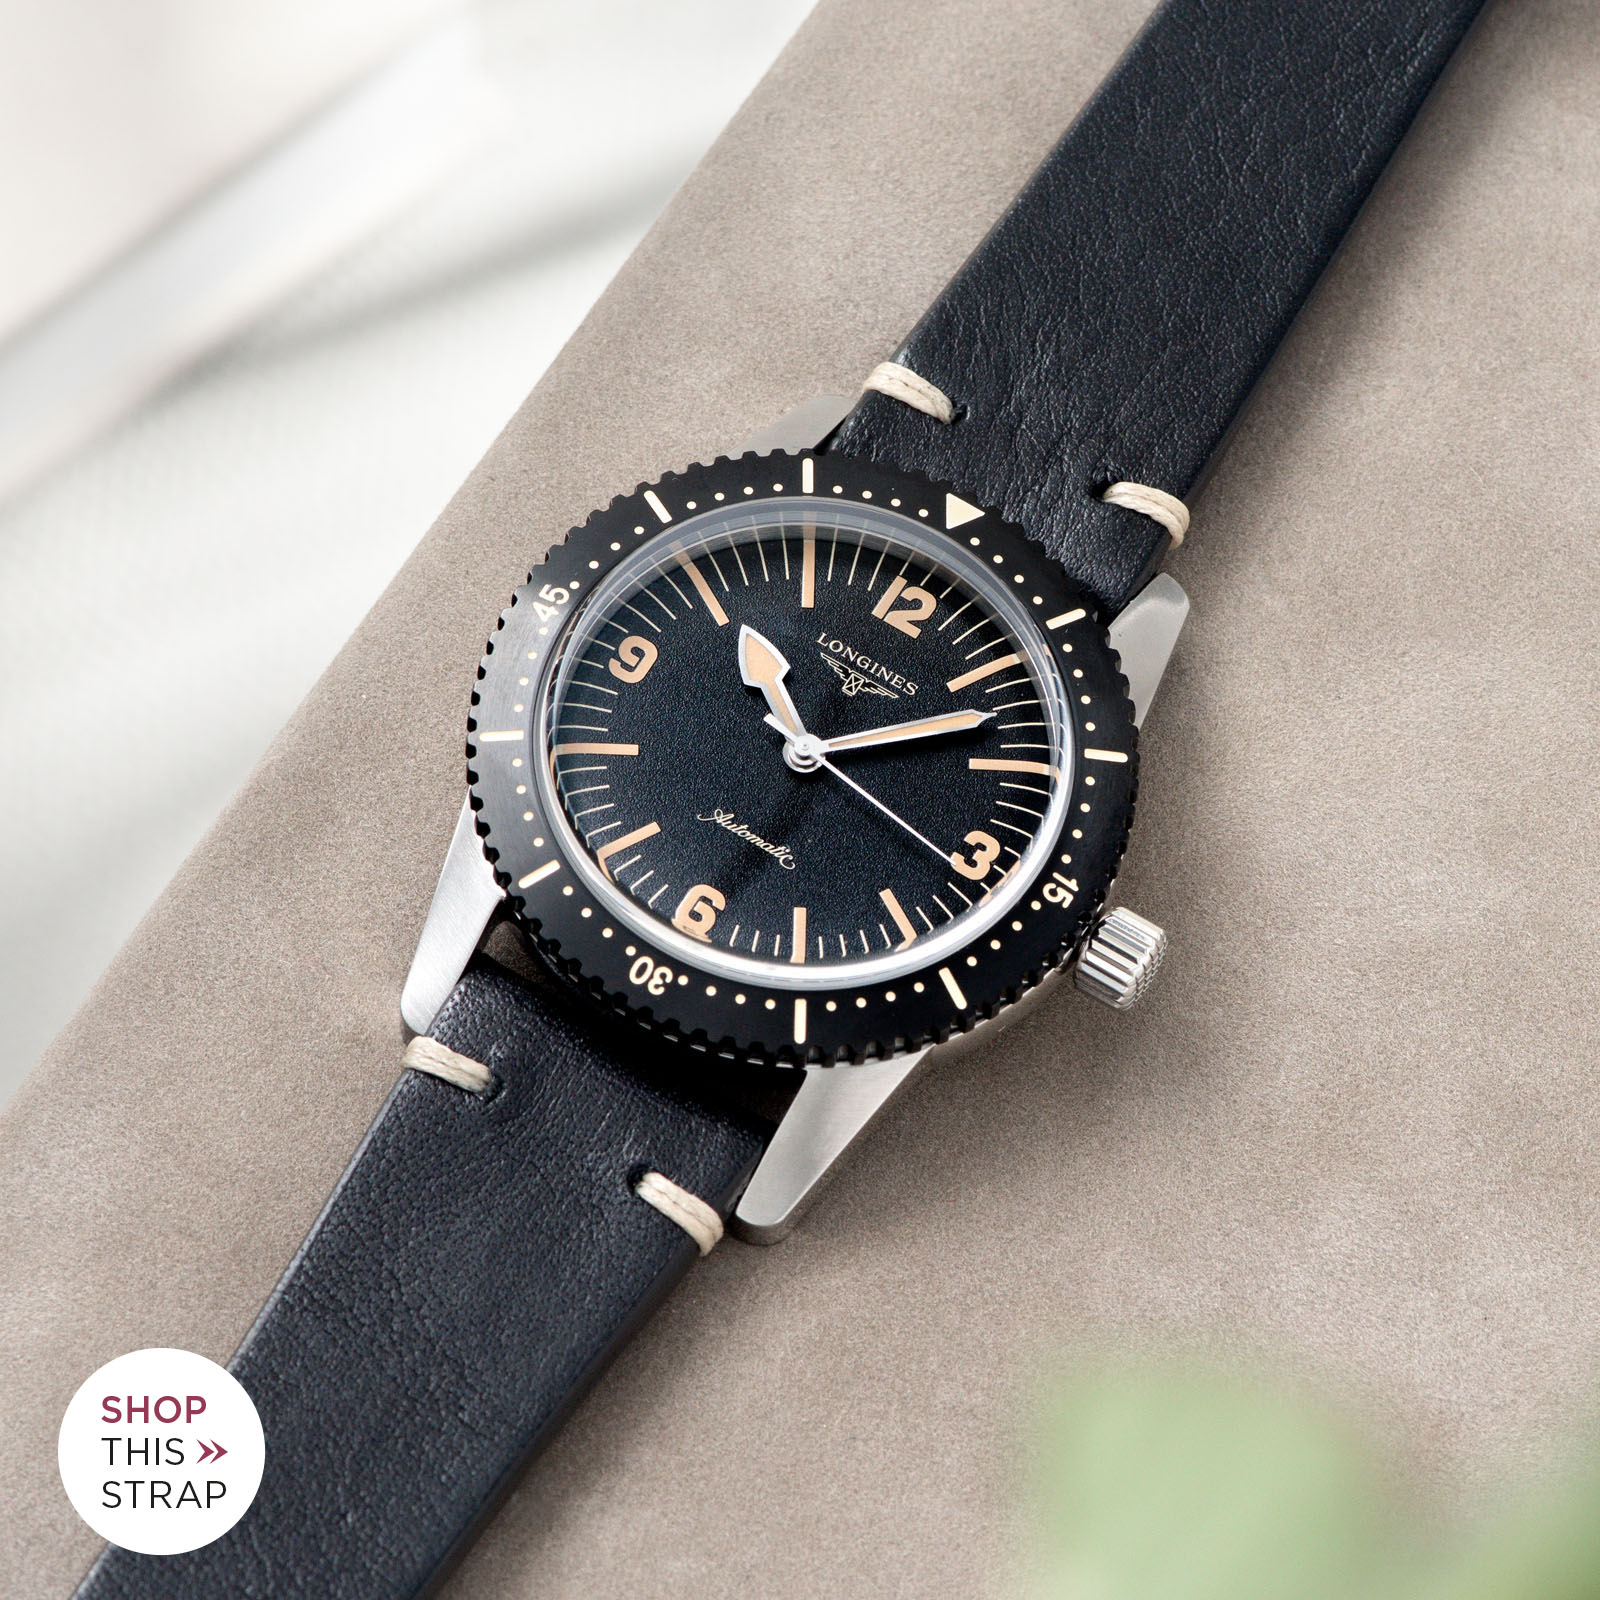 Bulang and Sons_Strap Guide_Longines Skin Diver_Black Leather Watch Strap